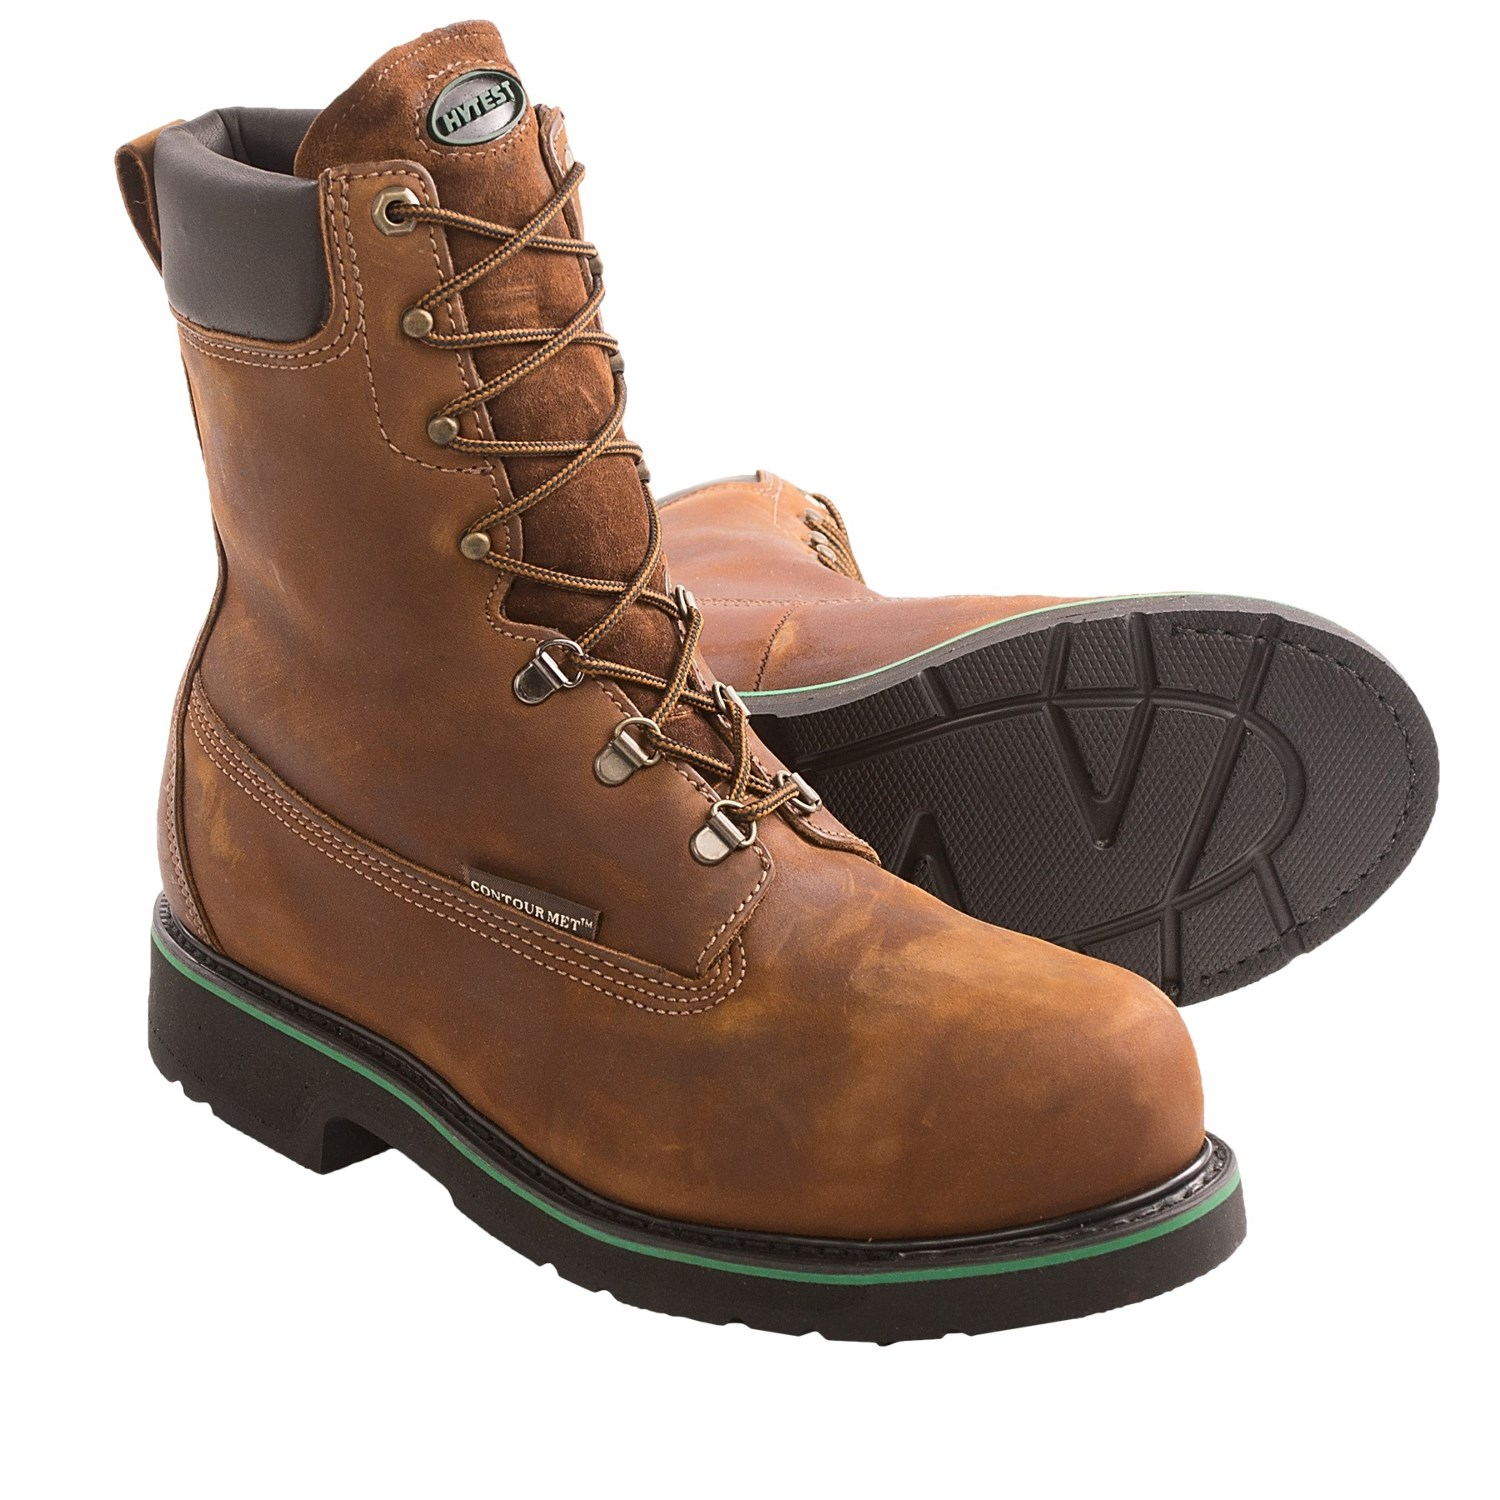 242c5db8a90f Wolverine FootRests Internal Metatarsal Guard Work Boots (For Men) 7588P 40